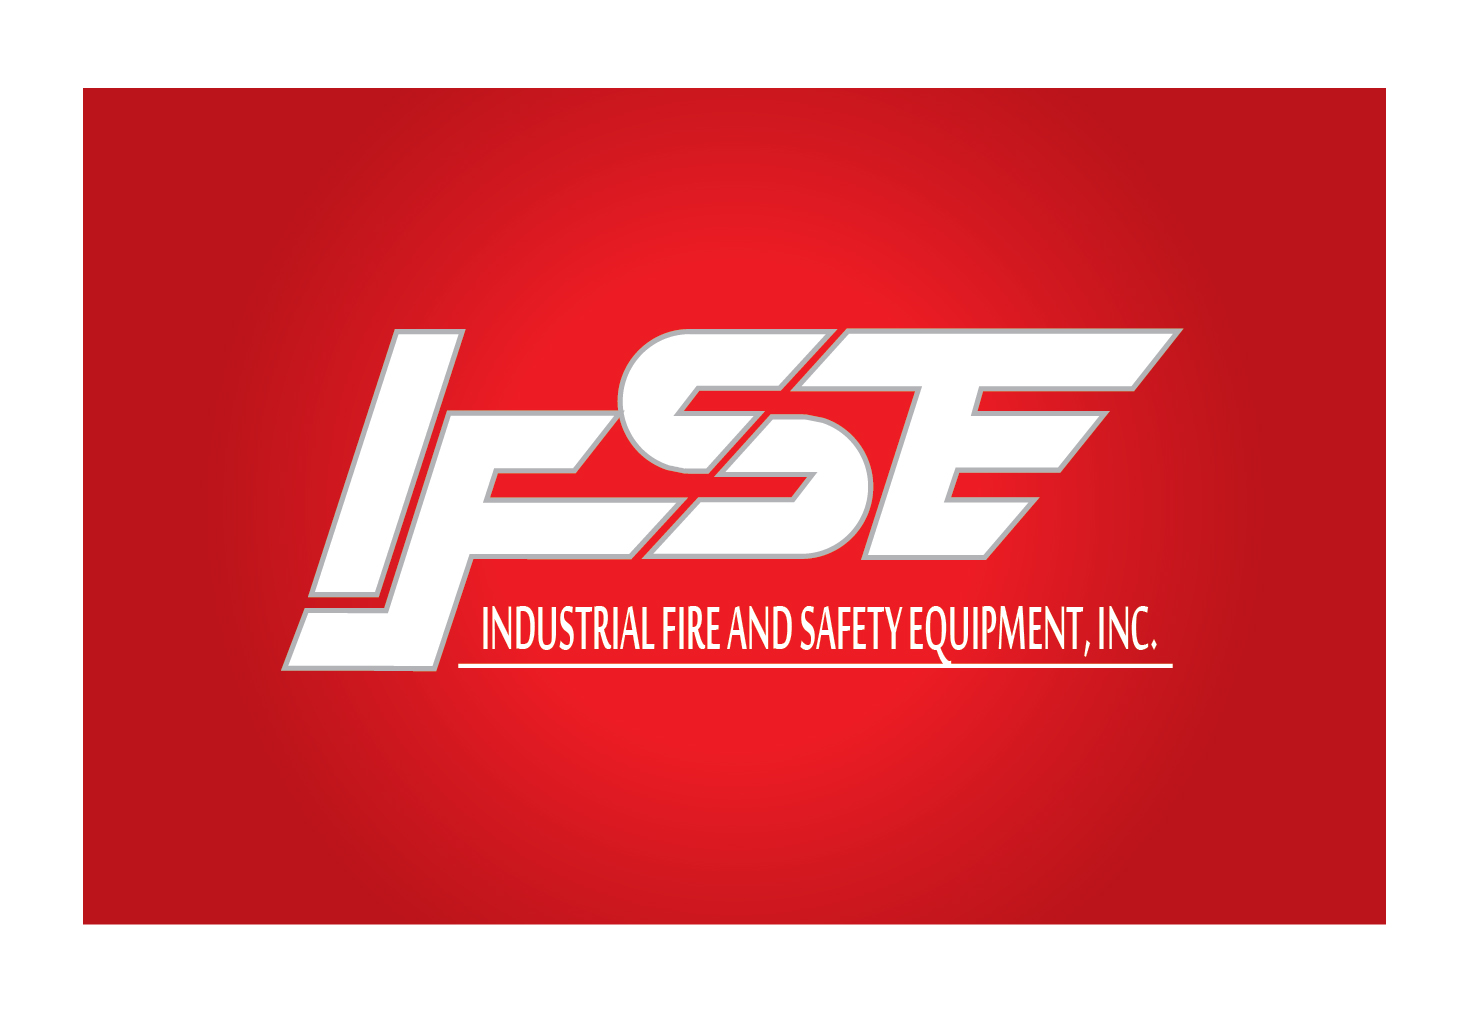 Logo Design by kowreck - Entry No. 160 in the Logo Design Contest New Logo Design for Industrial Fire and Safety Equipment, Inc..